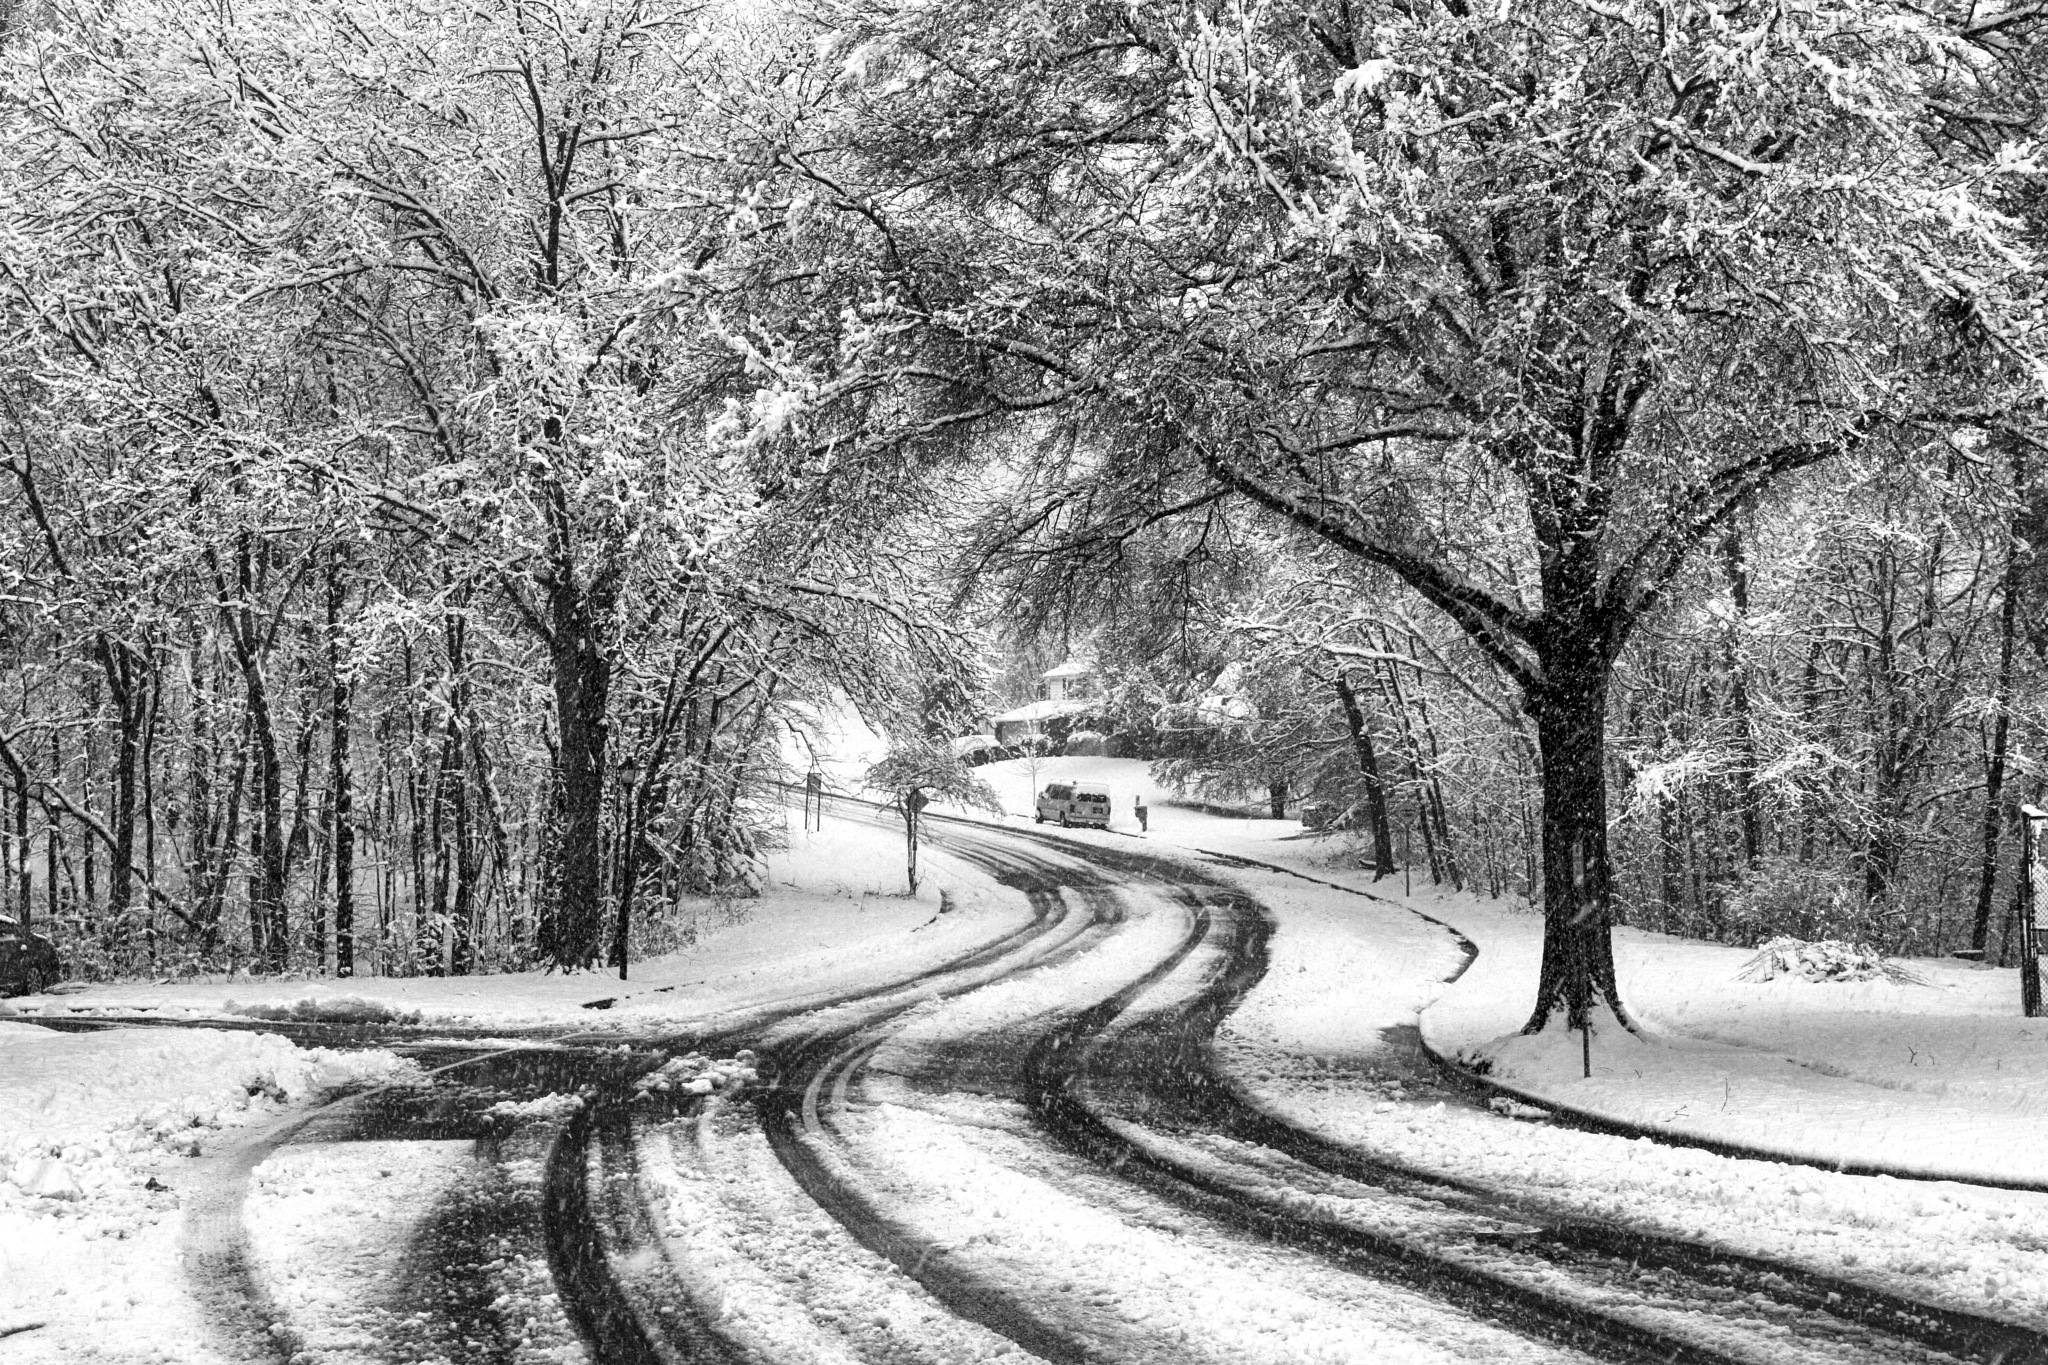 Snowfall on the First Day of Spring/Southern MD/2018 by aemdigitalphotography